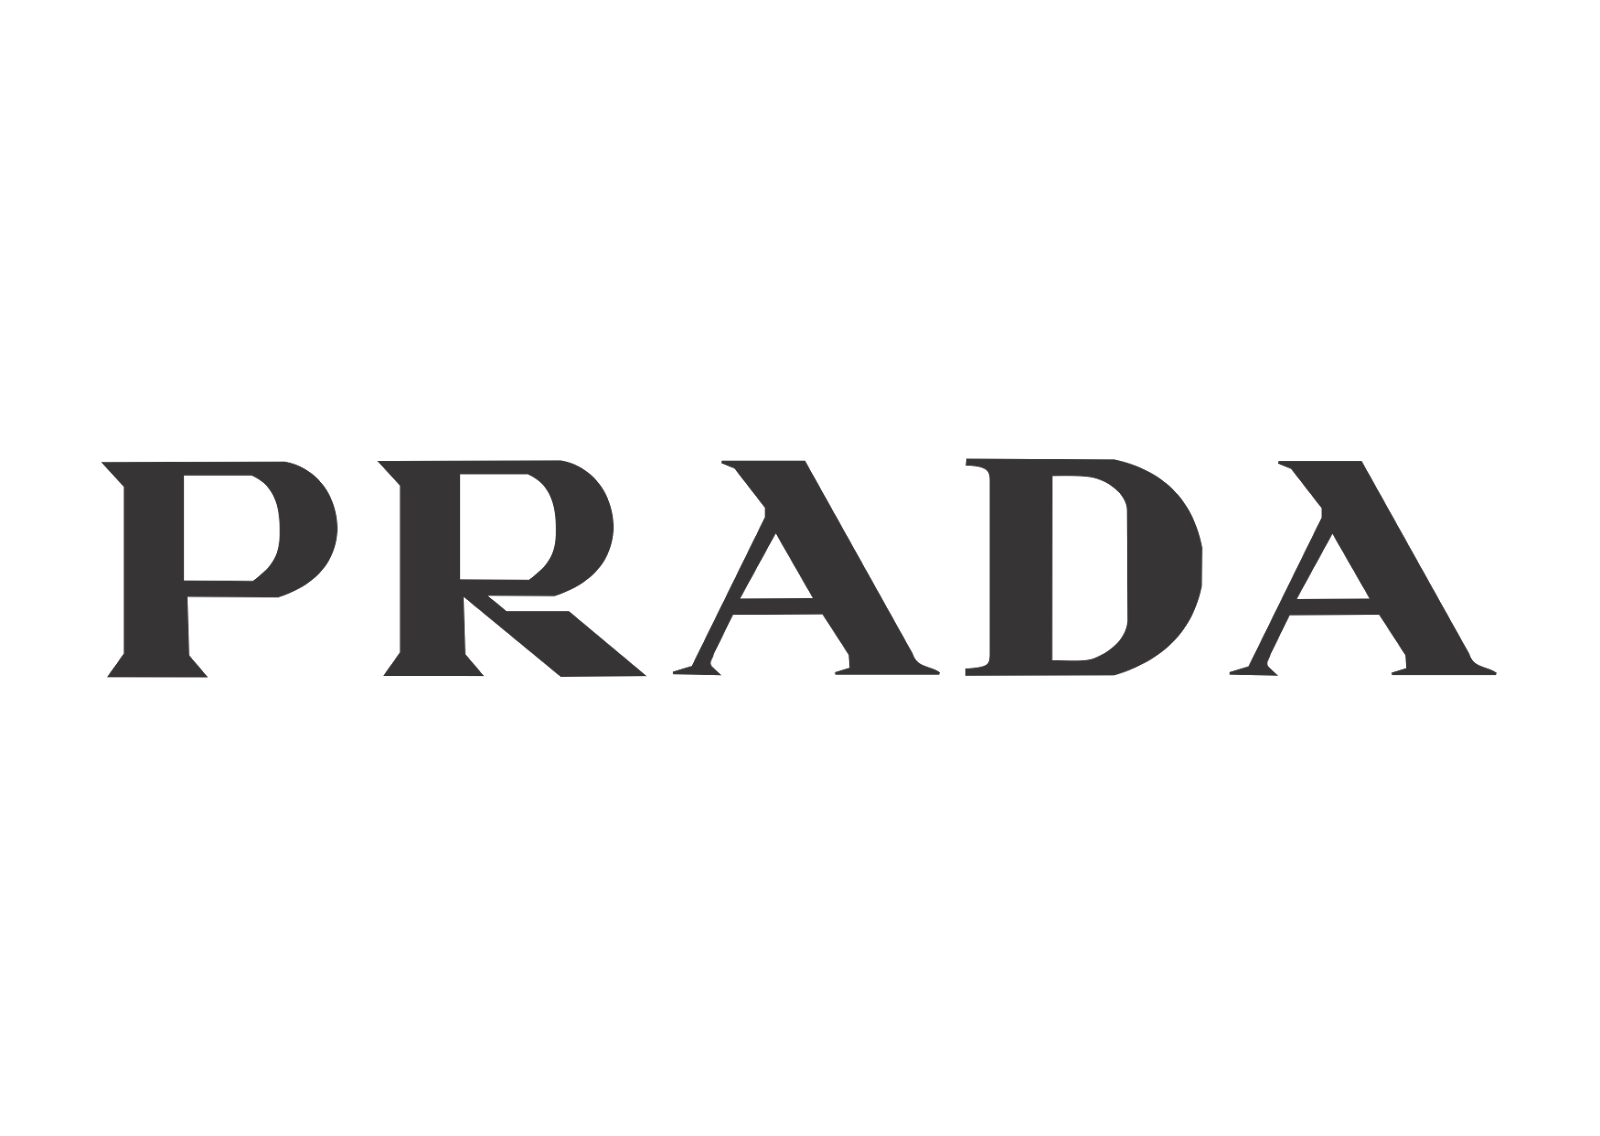 Prada Logo Vector download free